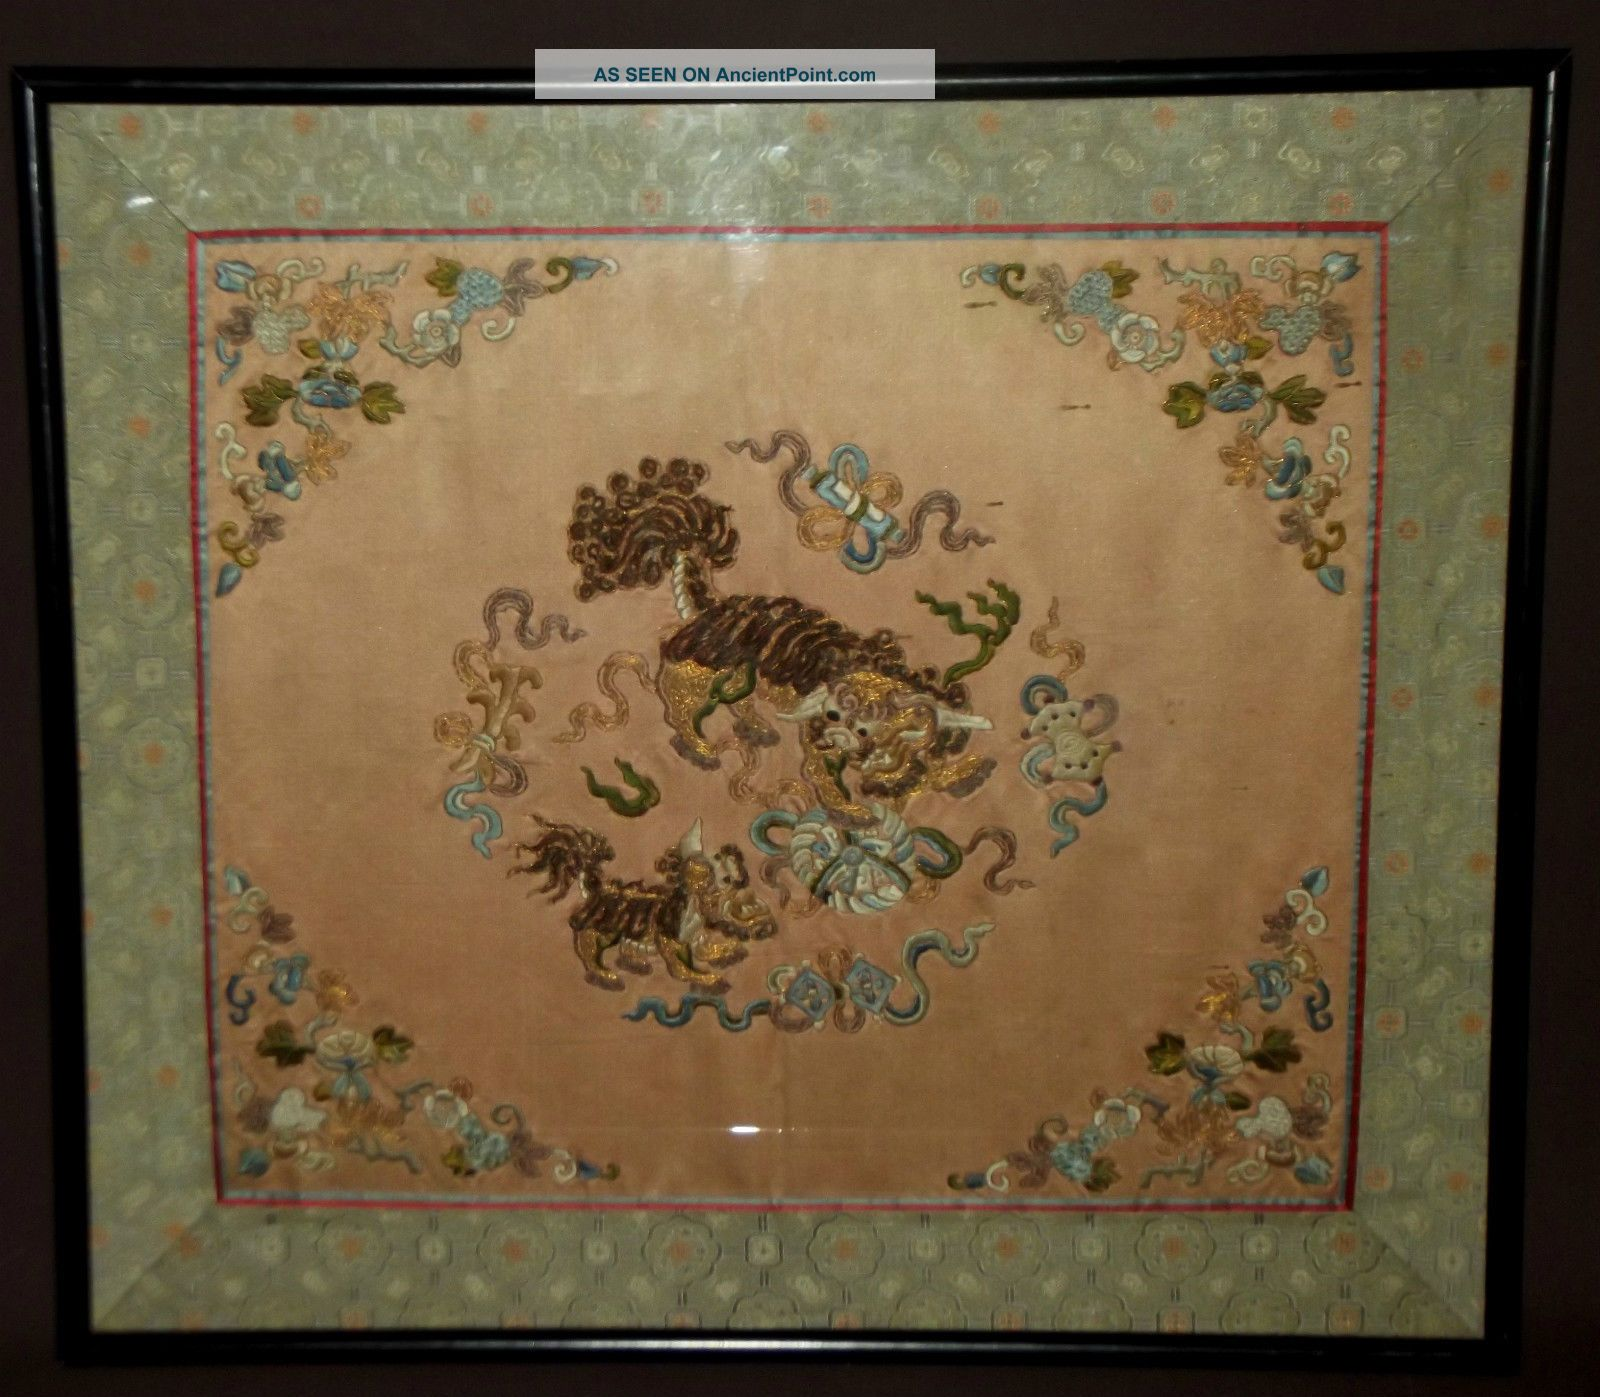 A Quality Antique Vintage Chinese Silk Embroidery Qing Dynasty Circa 19th C Textiles photo